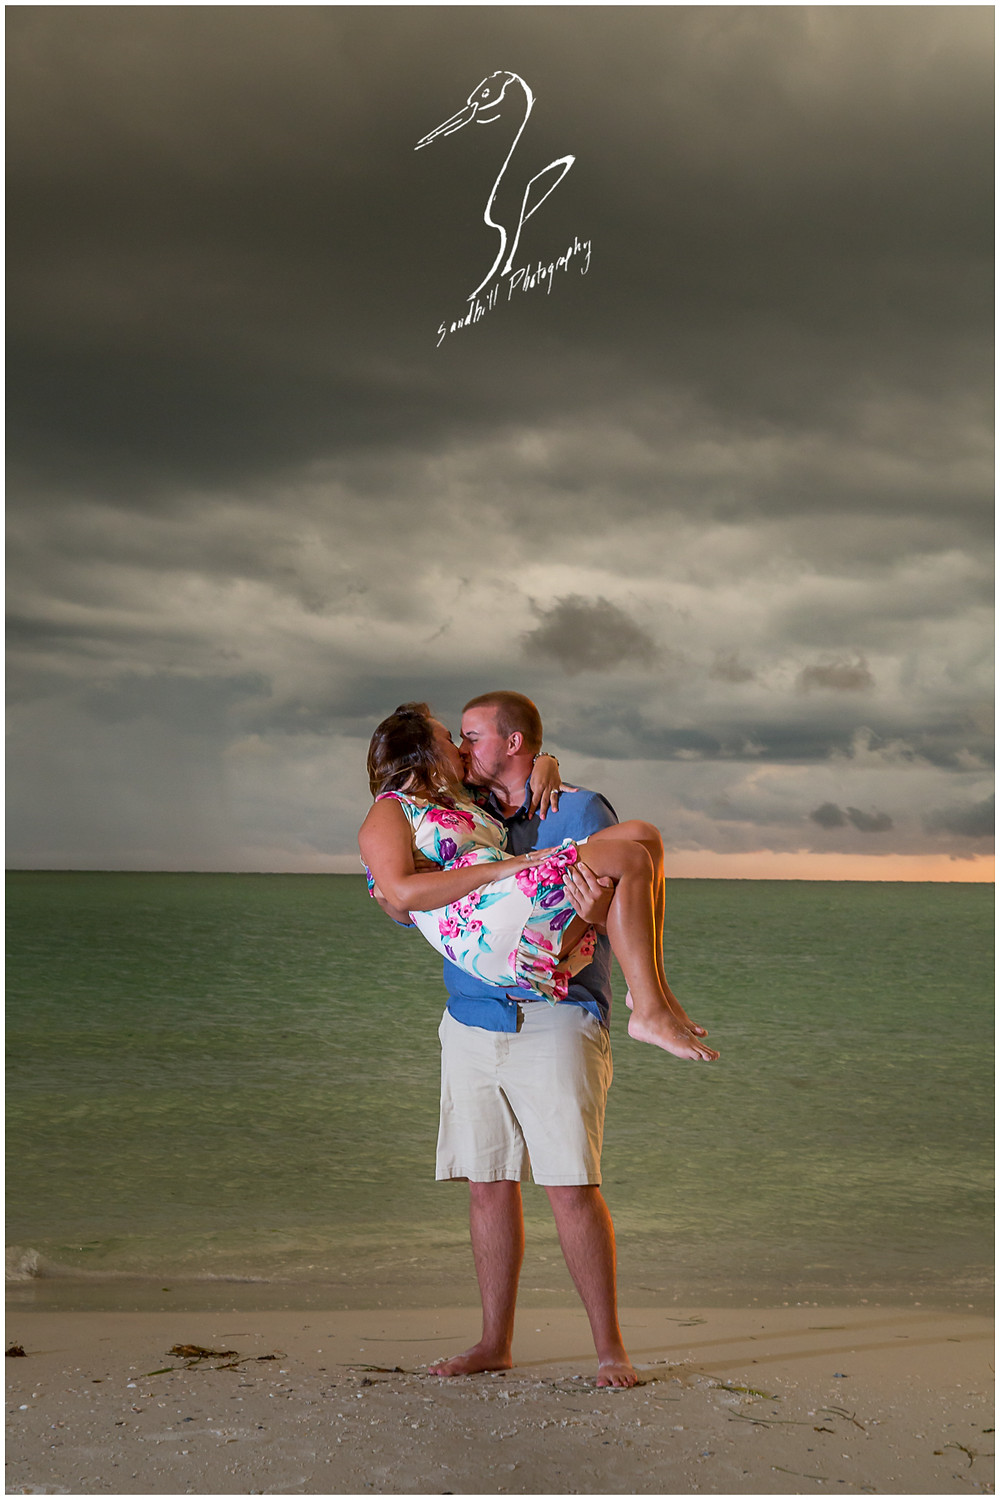 Bradenton Beach Engagement Photography, a man carries his fiance in his arms at sunset as a storm rolls into the background